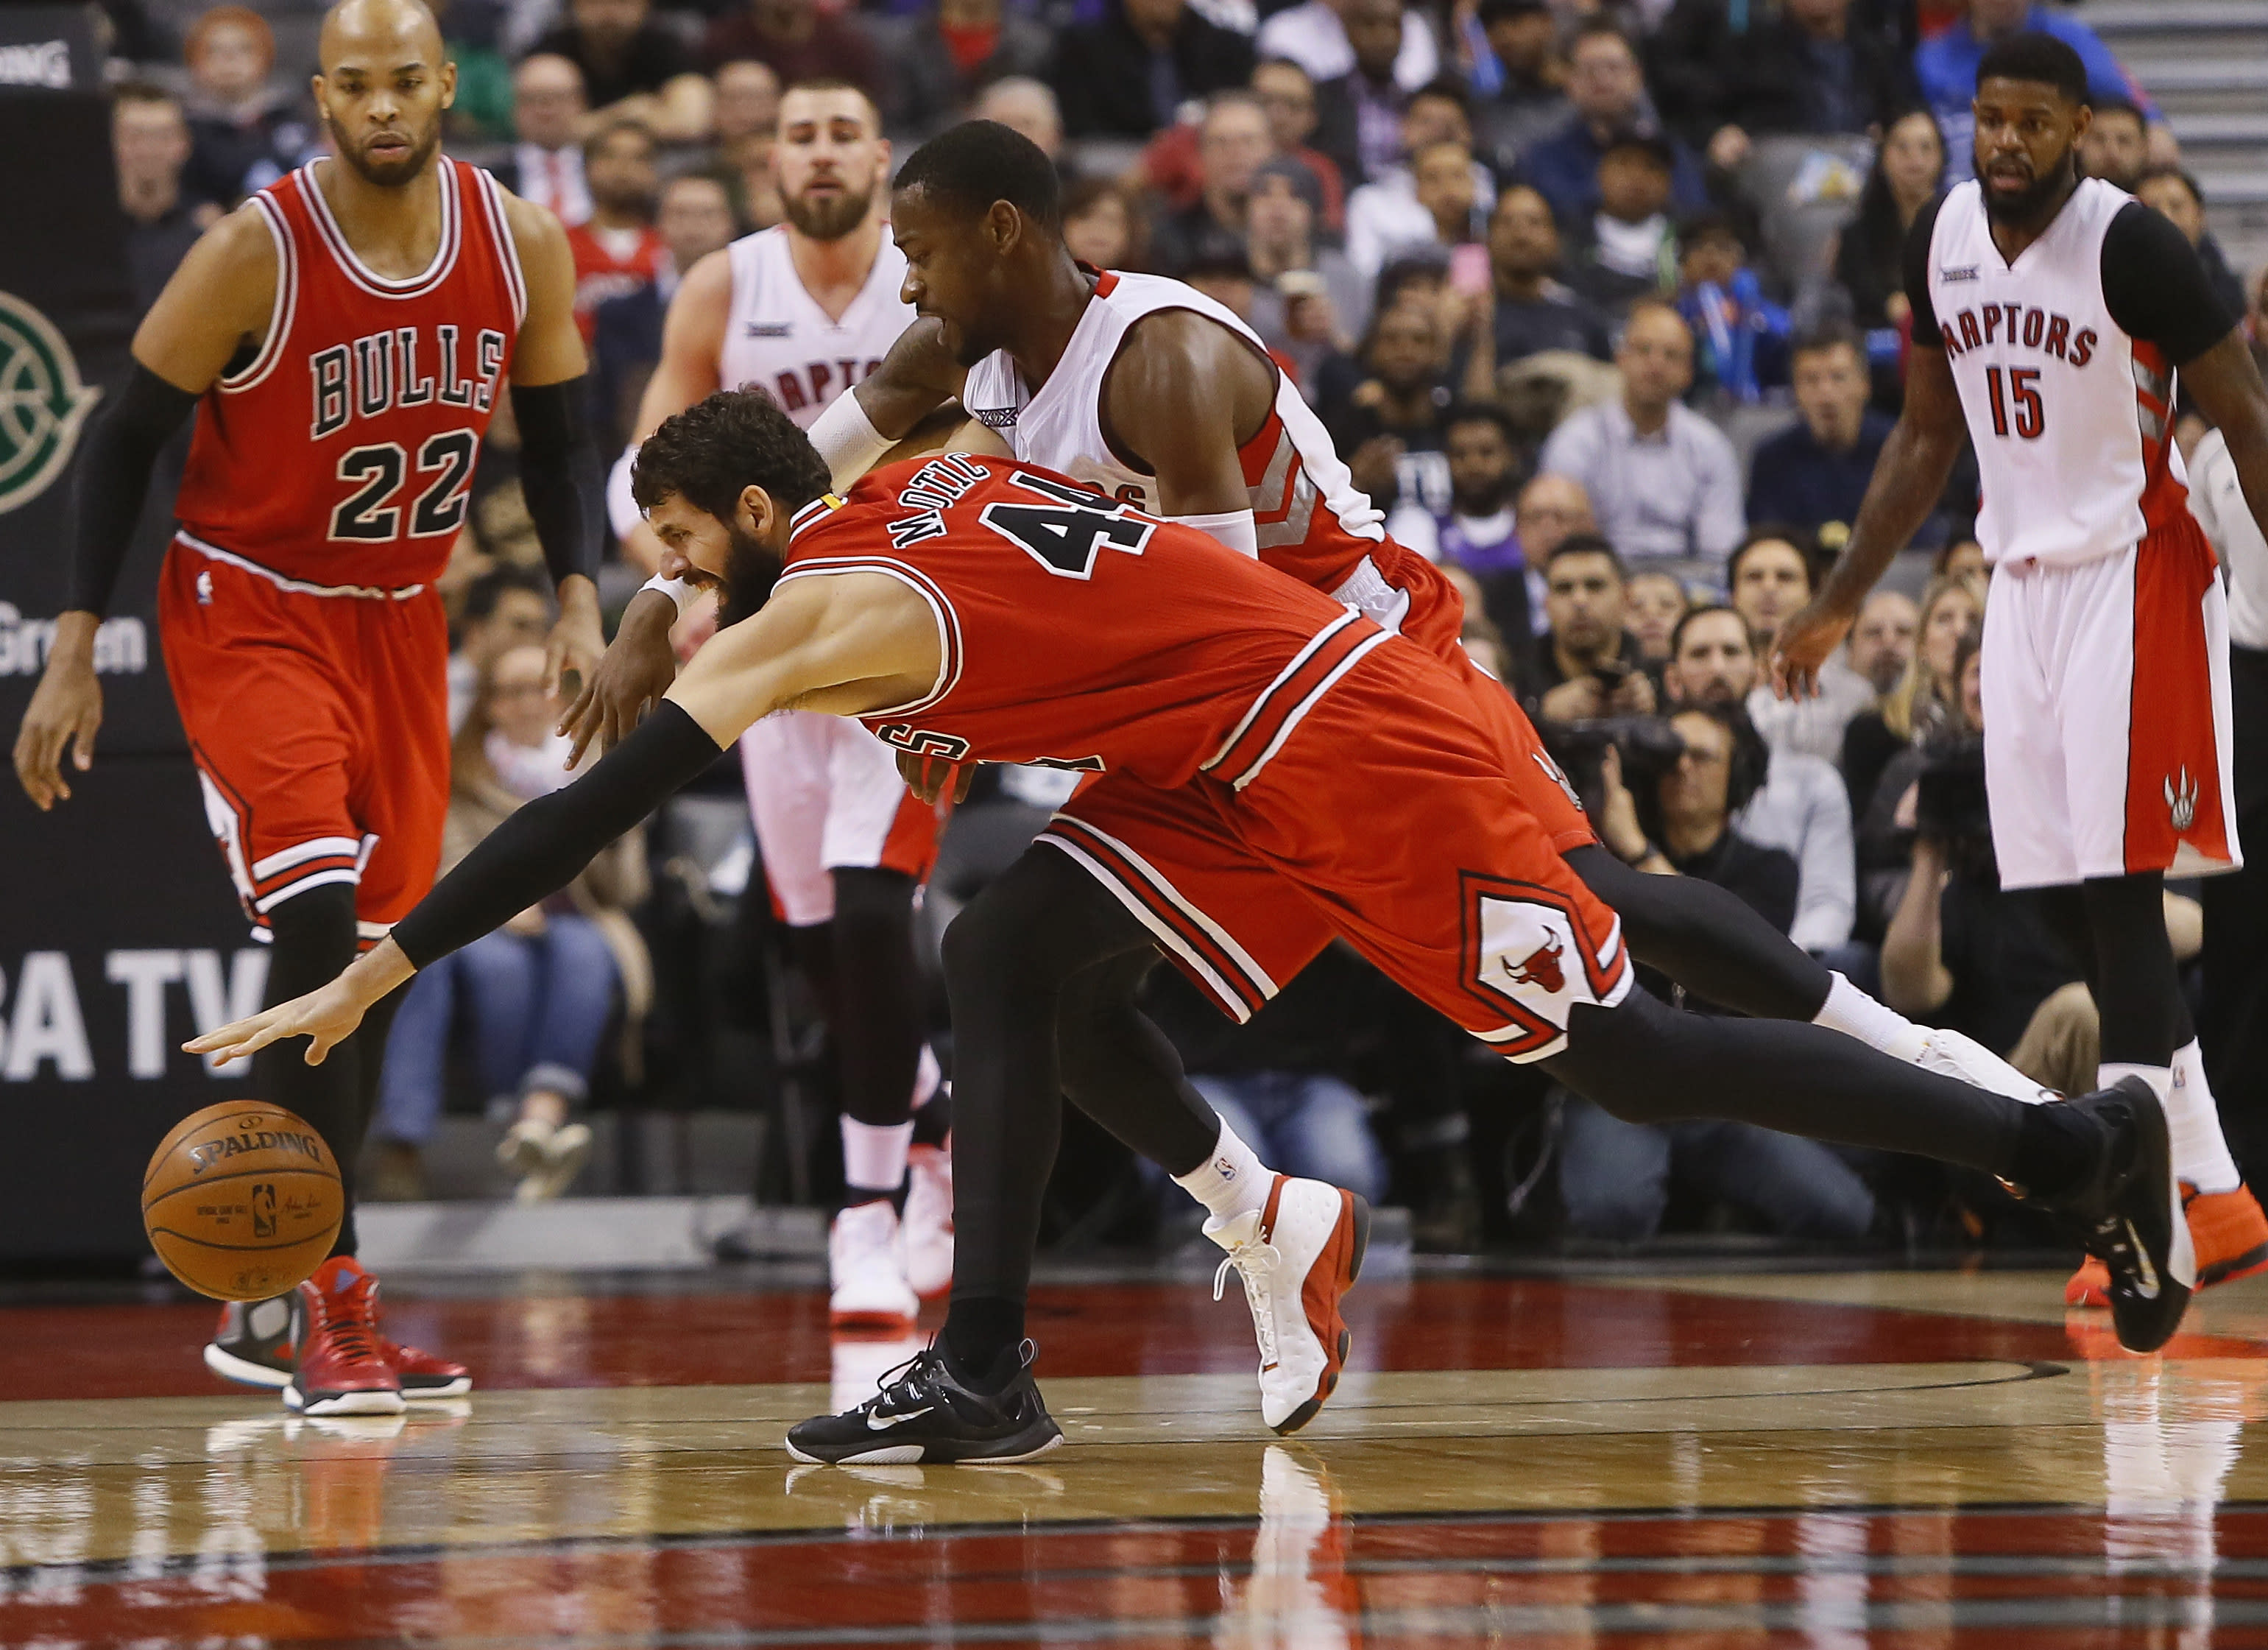 NBA Playoff Picture Update: Bulls run roughshod over Raptors, take control of East's 3 spot